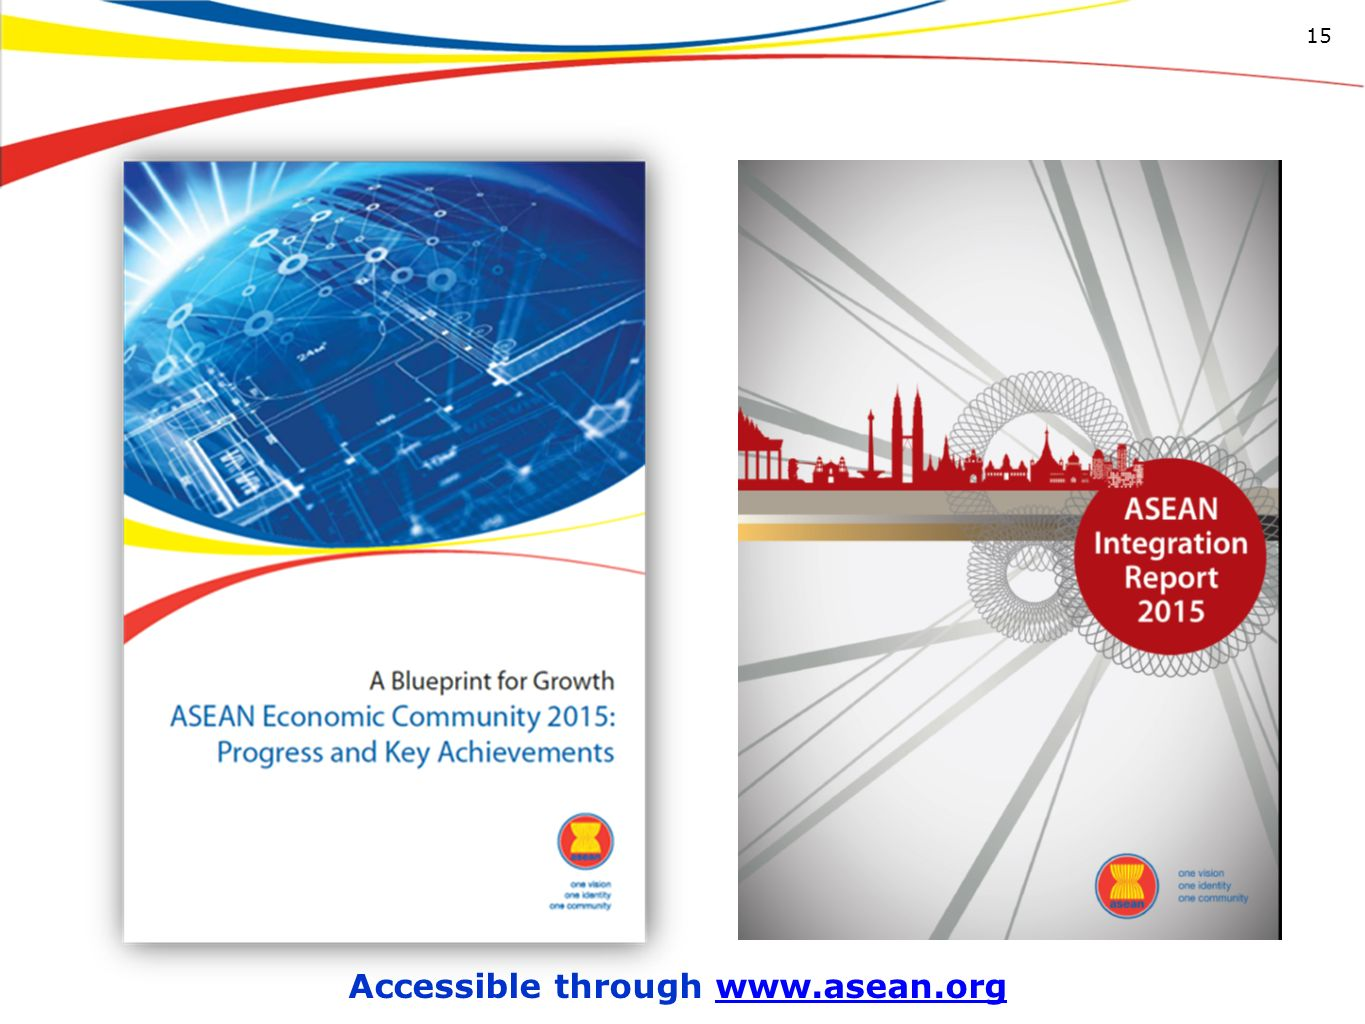 Asean economic community ppt video online download accessible through asean malvernweather Gallery